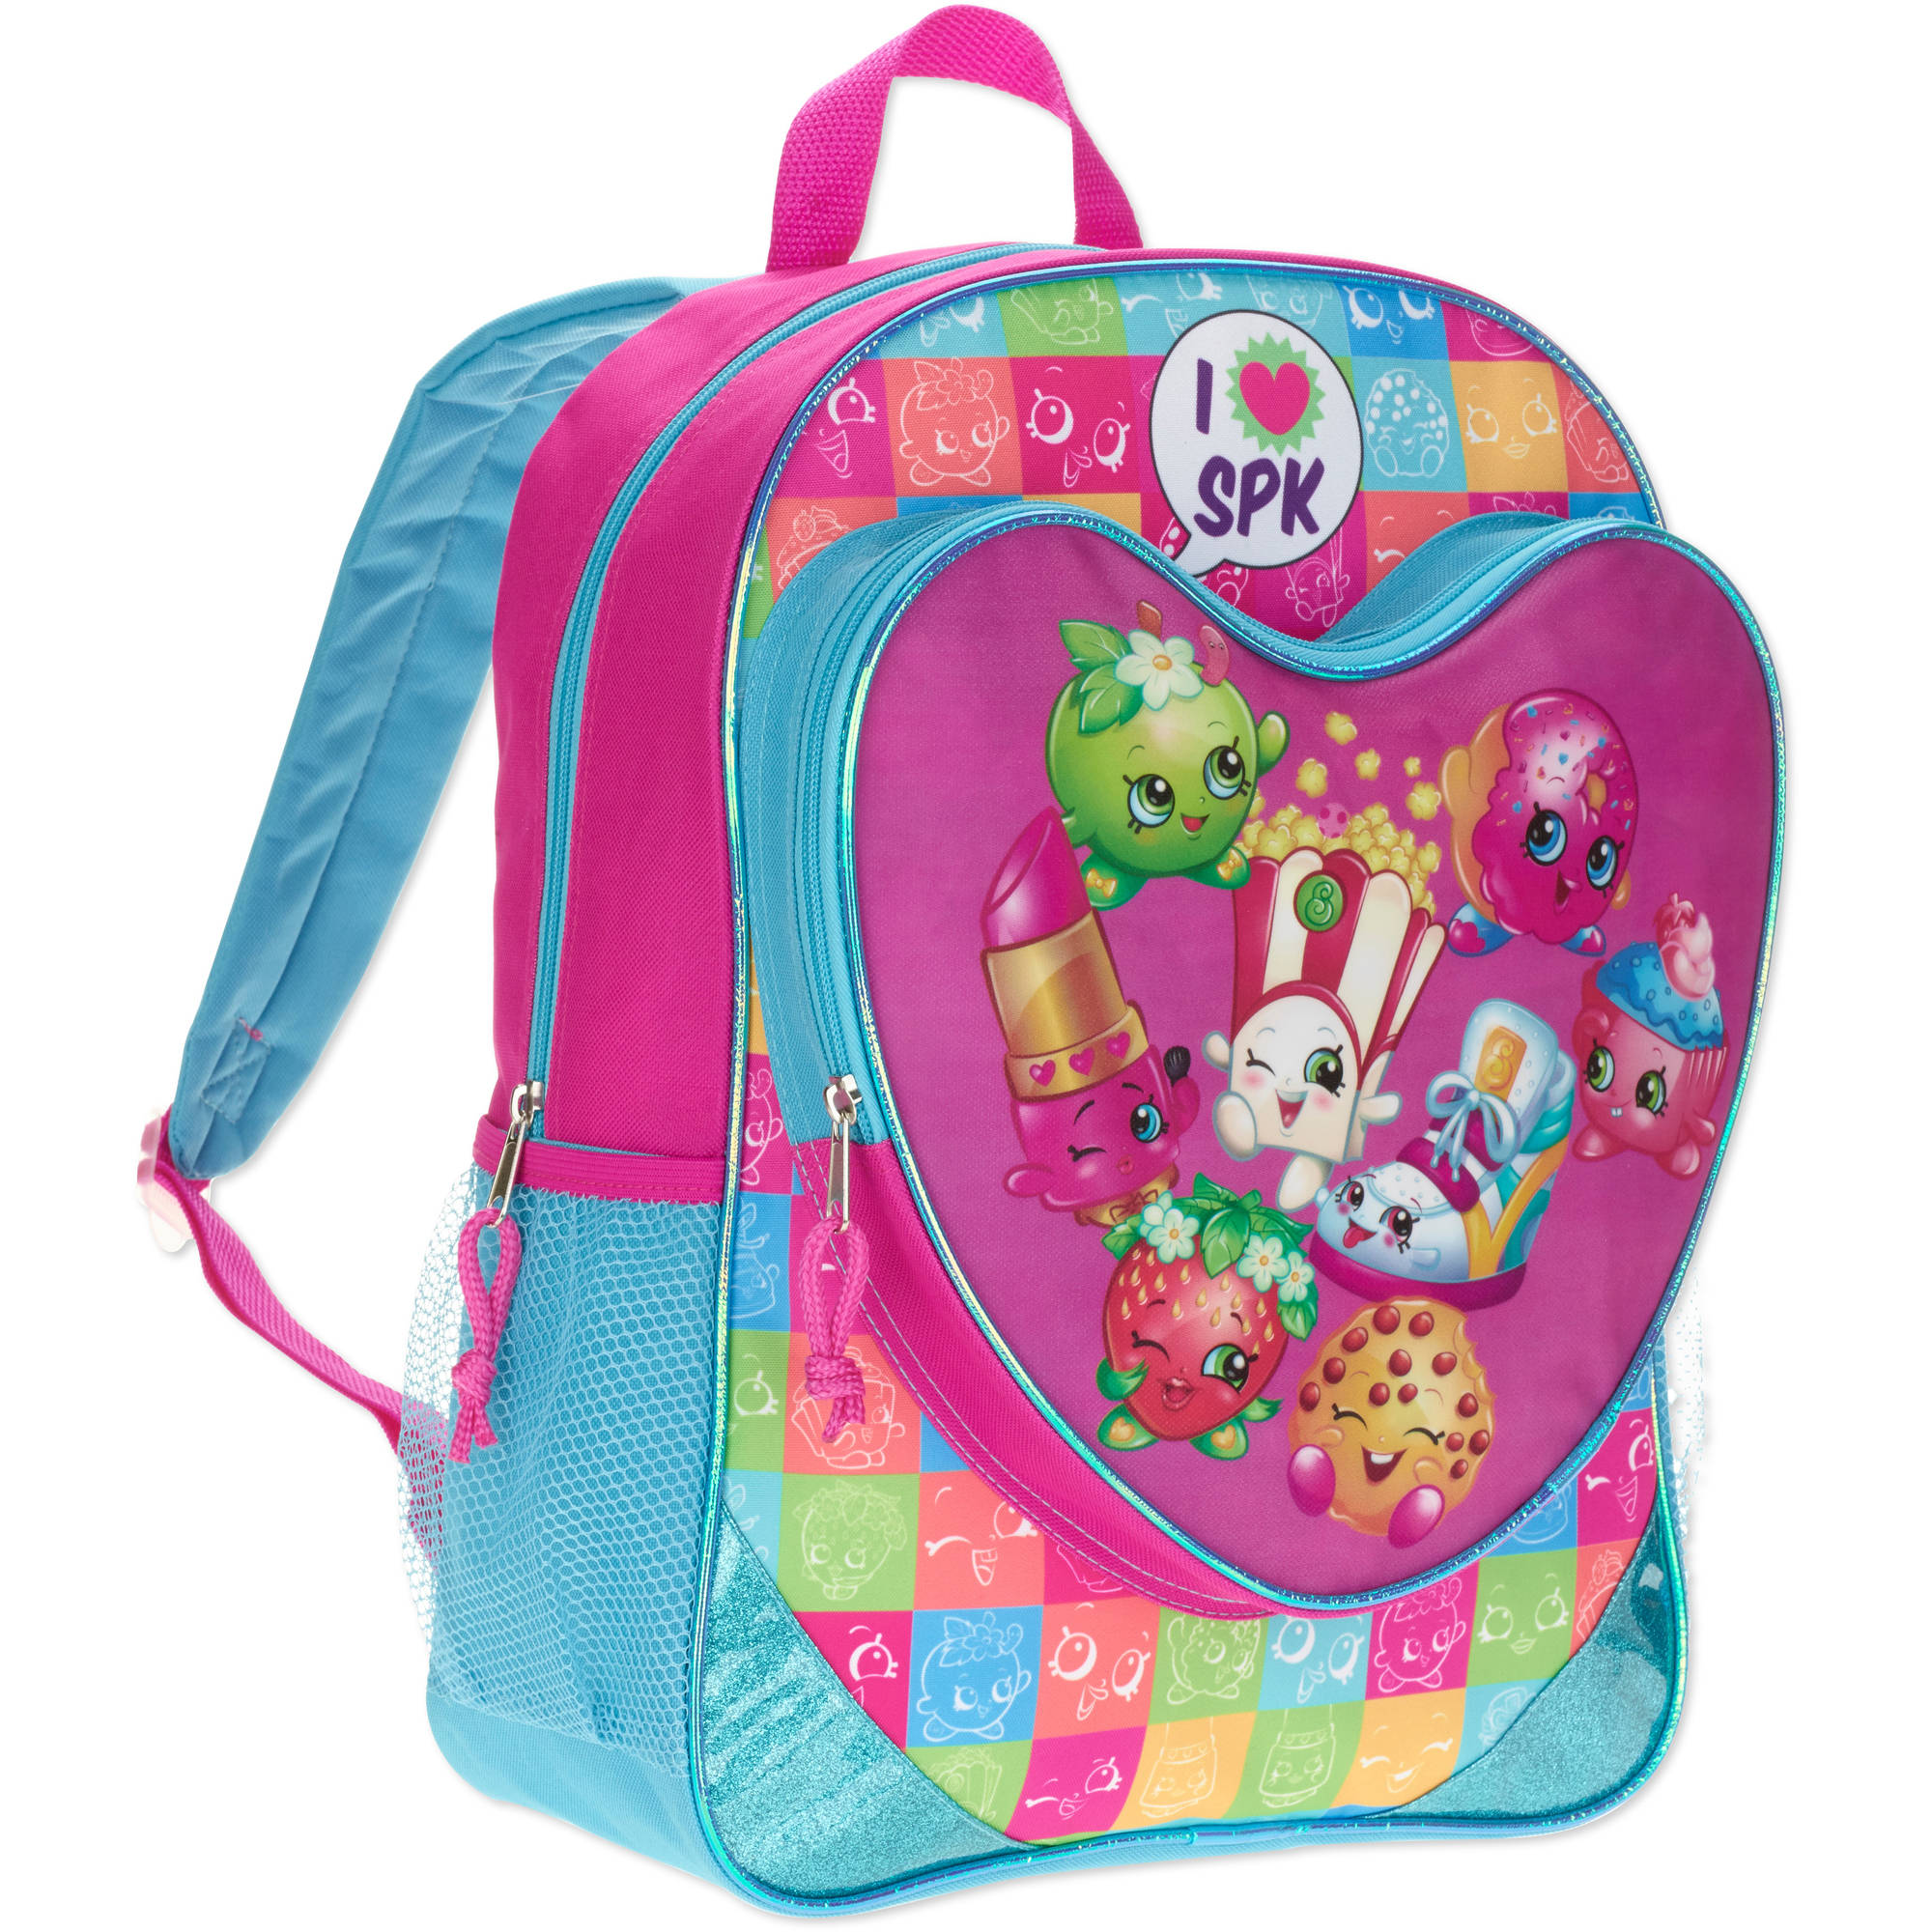 Backpacks - Walmart.com